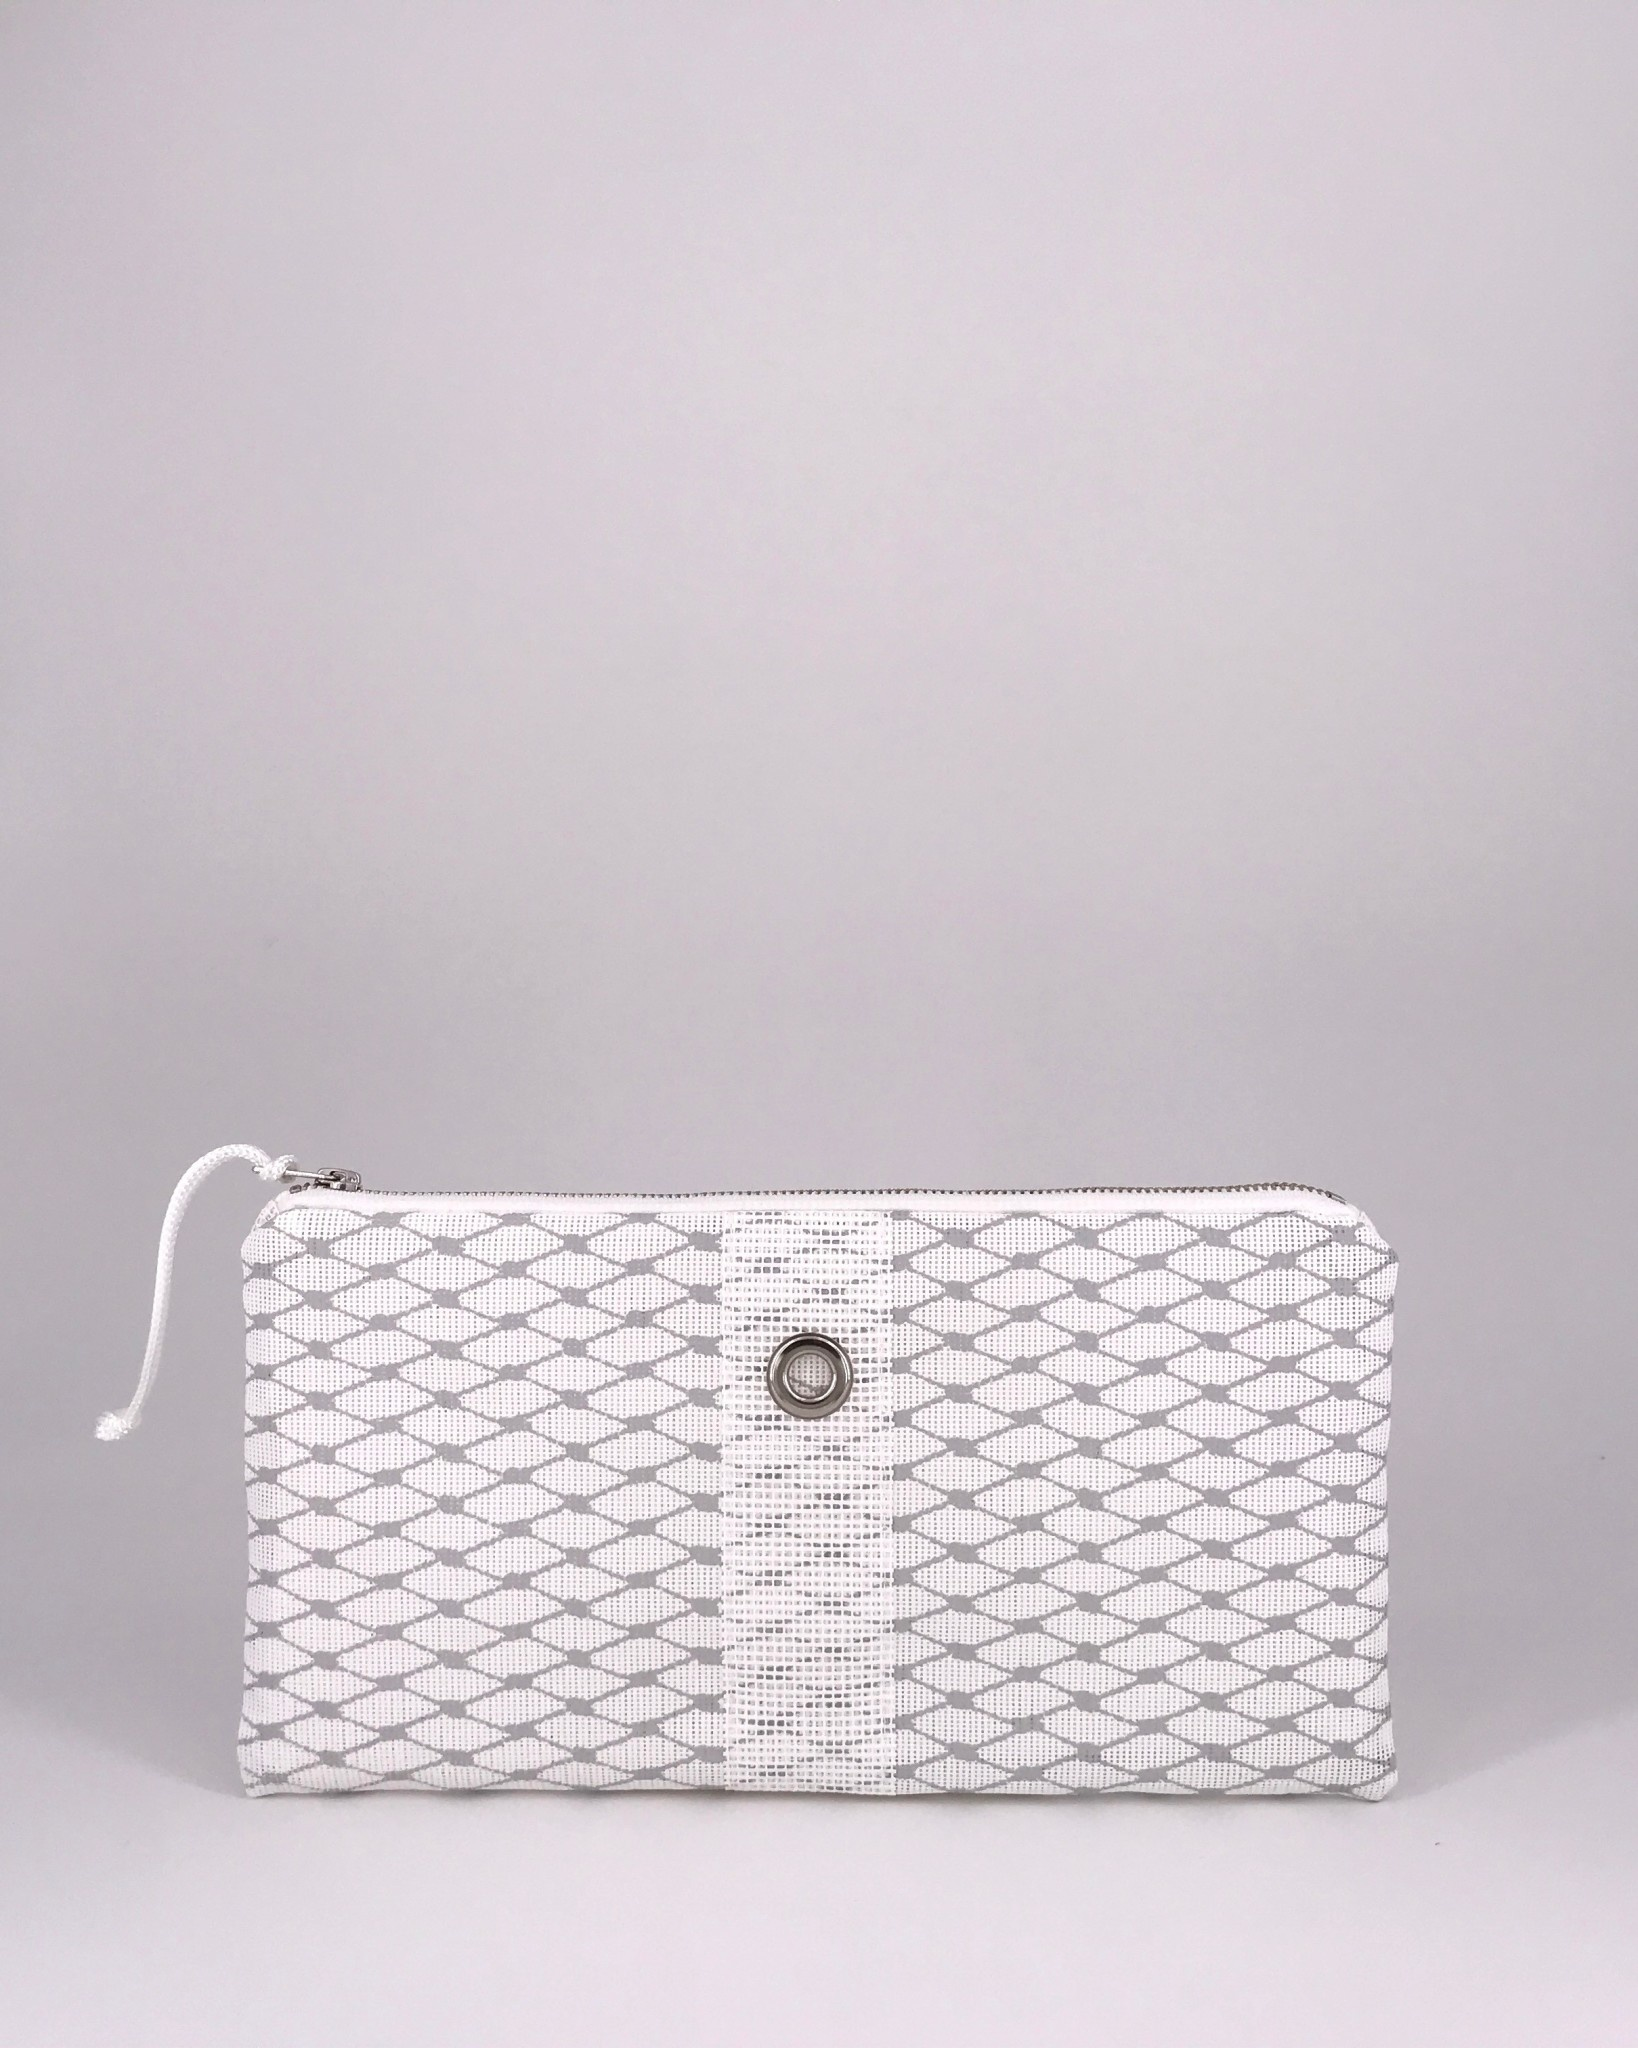 Alaina Marie ® Harbor Mist & White Clutch